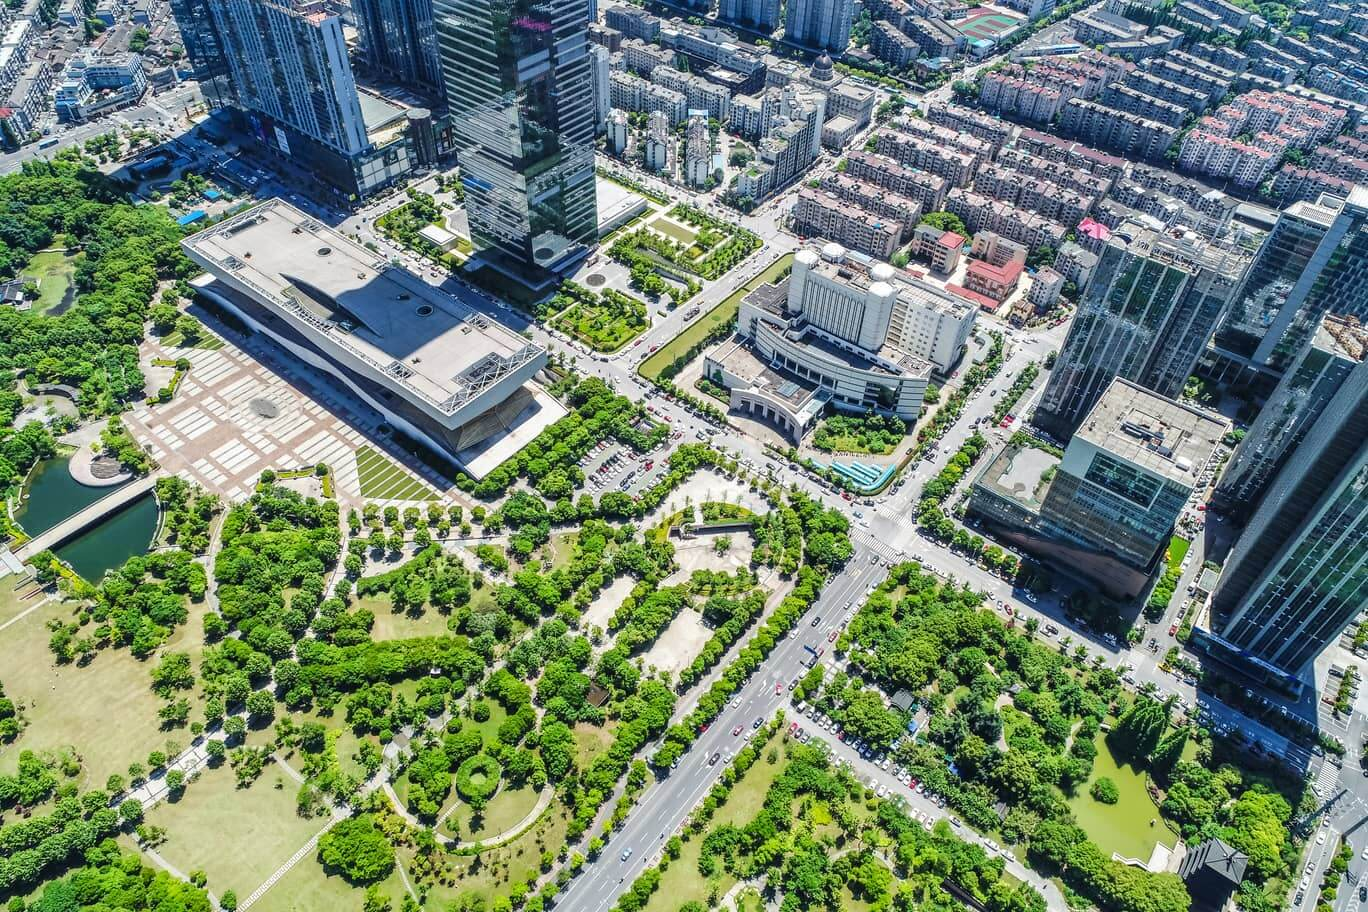 supply chain processes need to be changed due to Urbanization